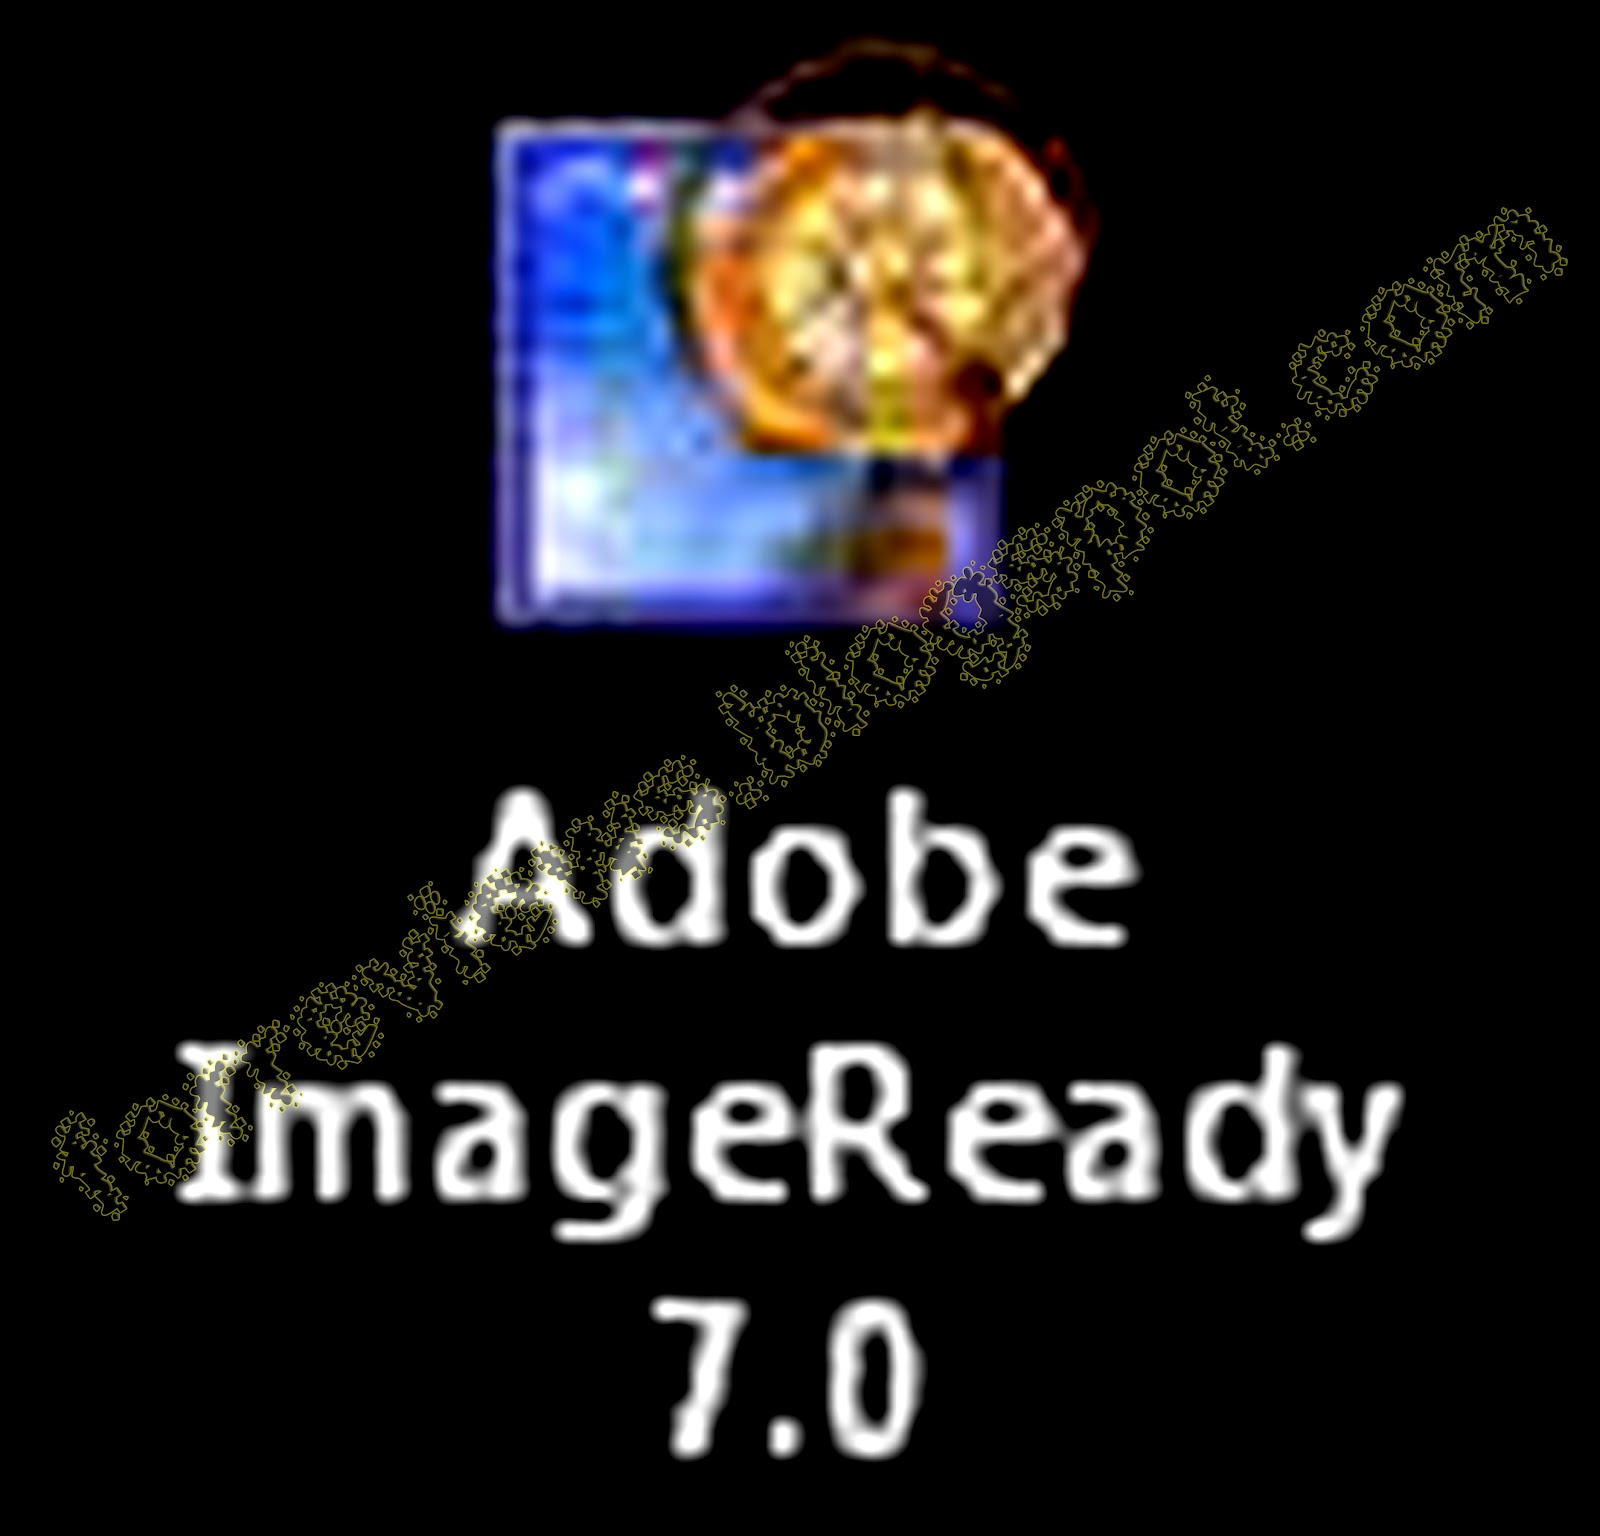 imageready 7: